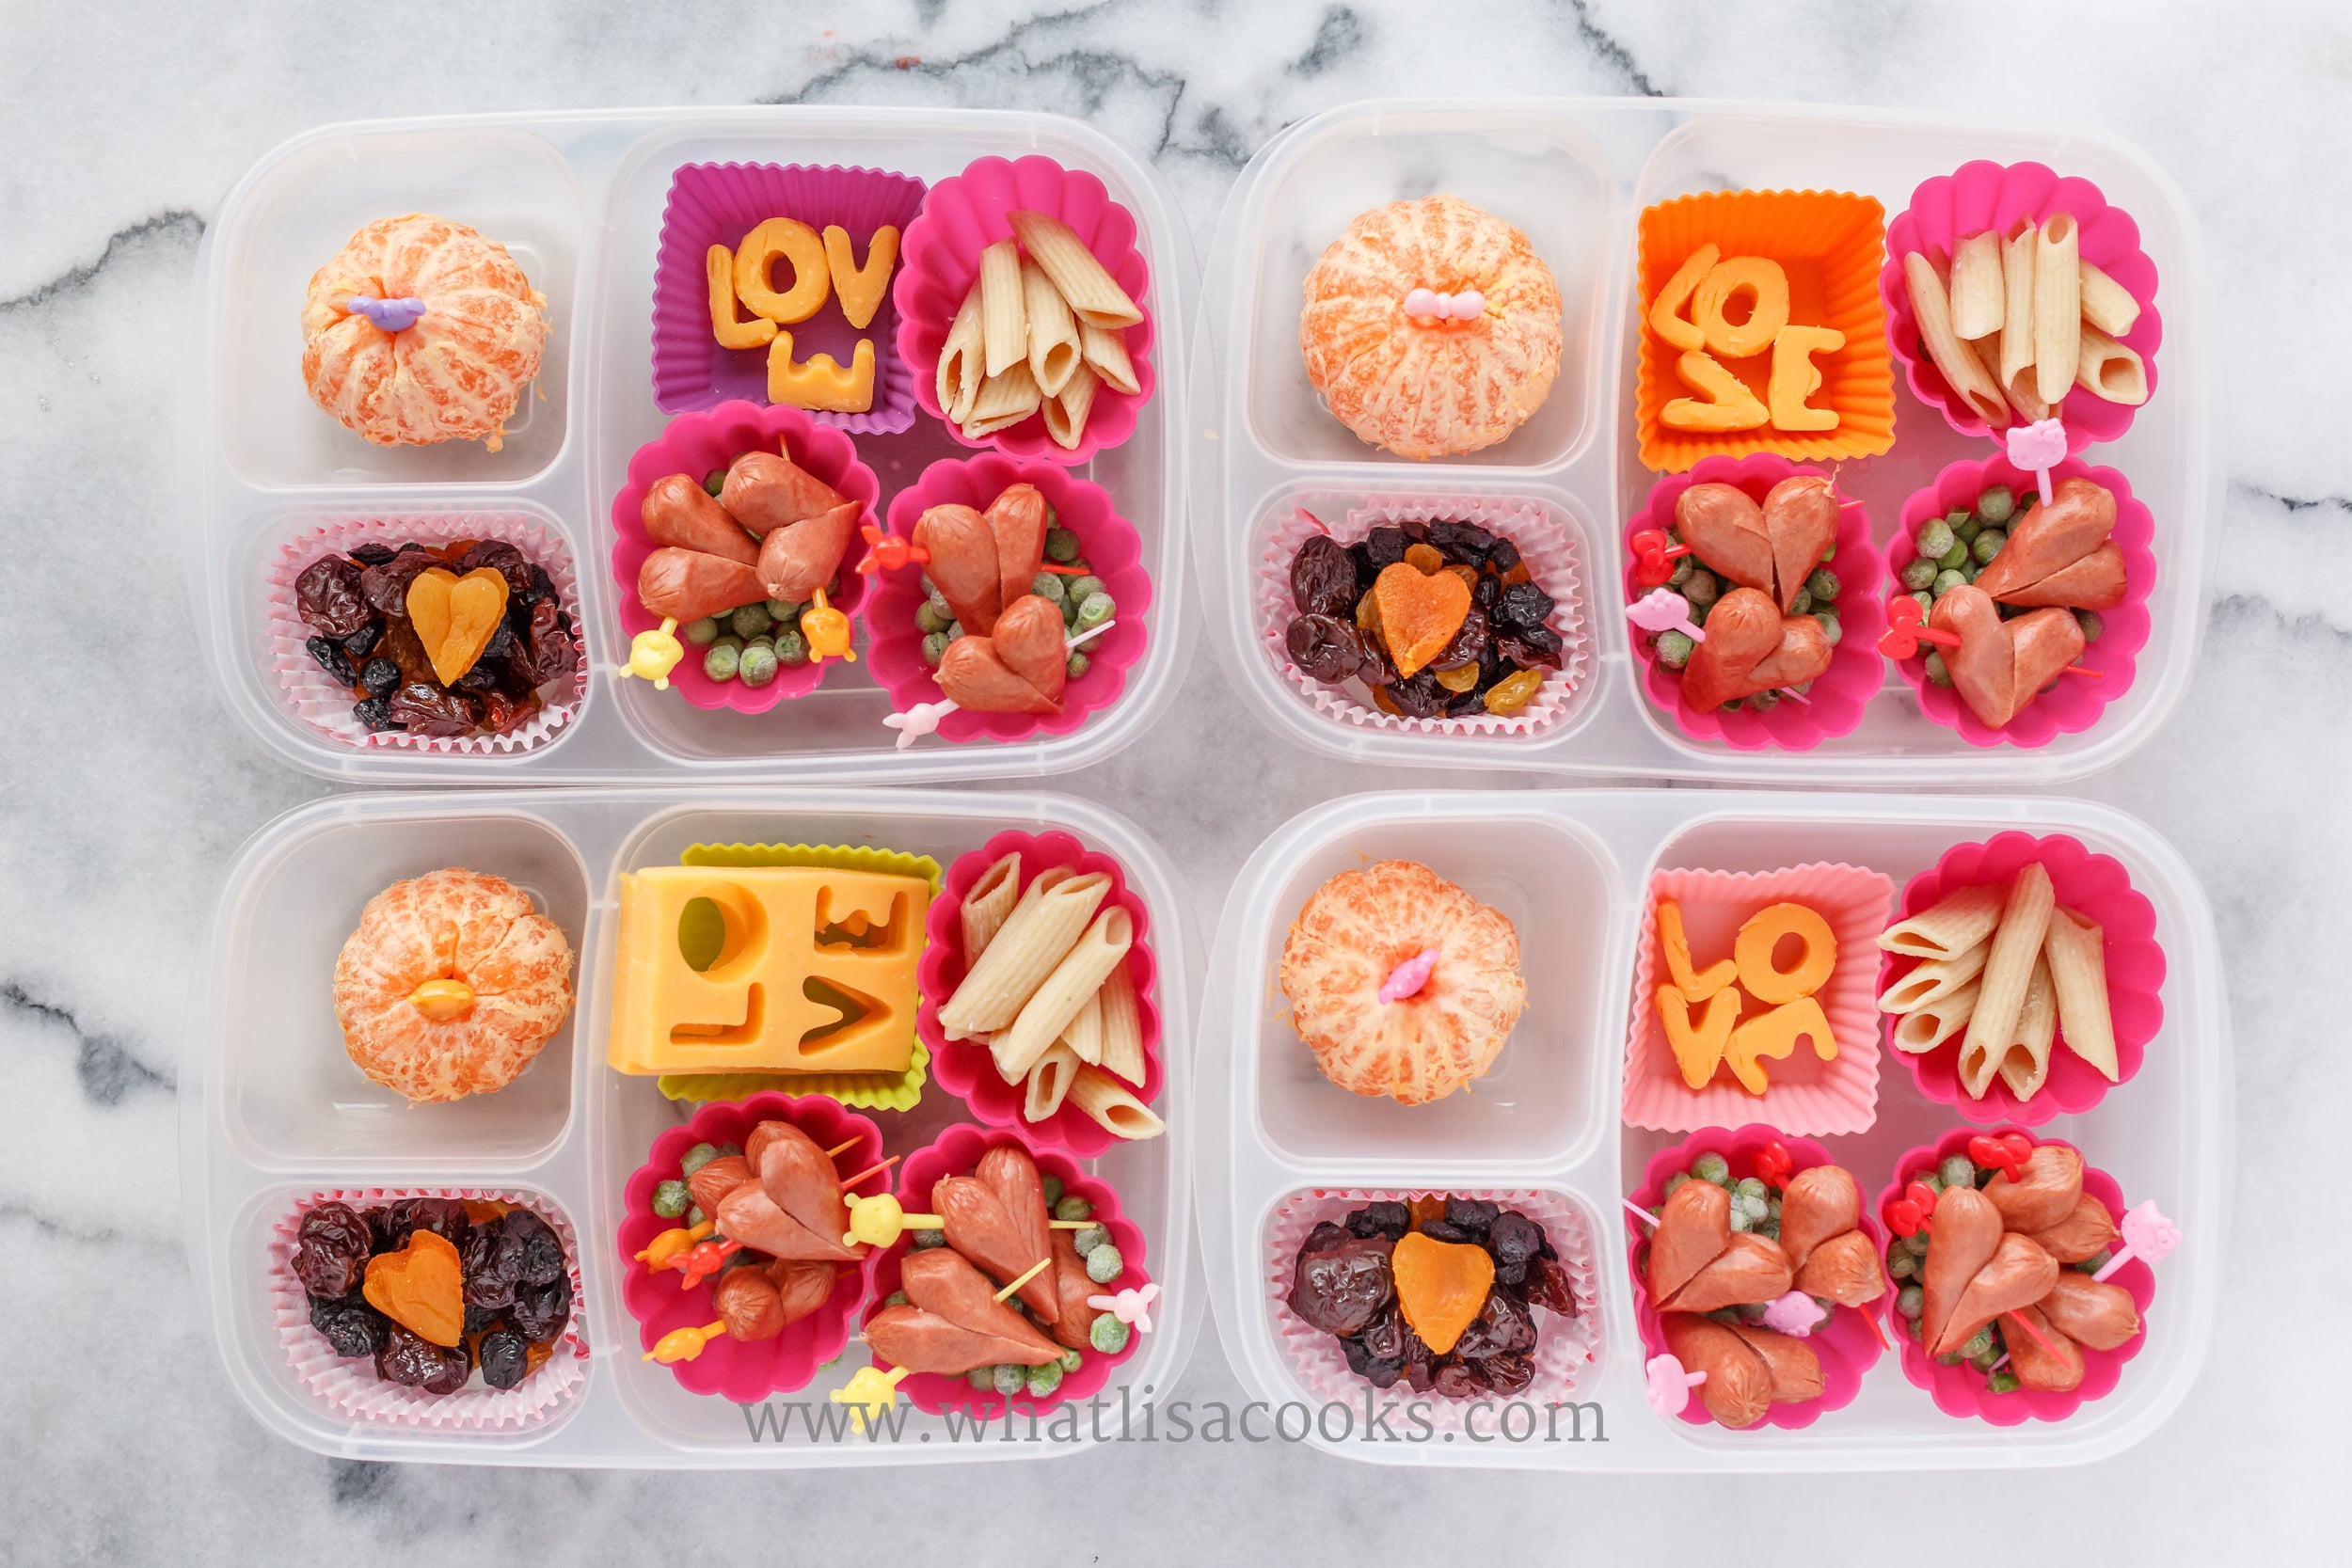 Thick slices of cheese with LOVE cut out with mini letter cutters, pasta, hot dog hearts, peas, dried fruit mix with a dried apricot heart.